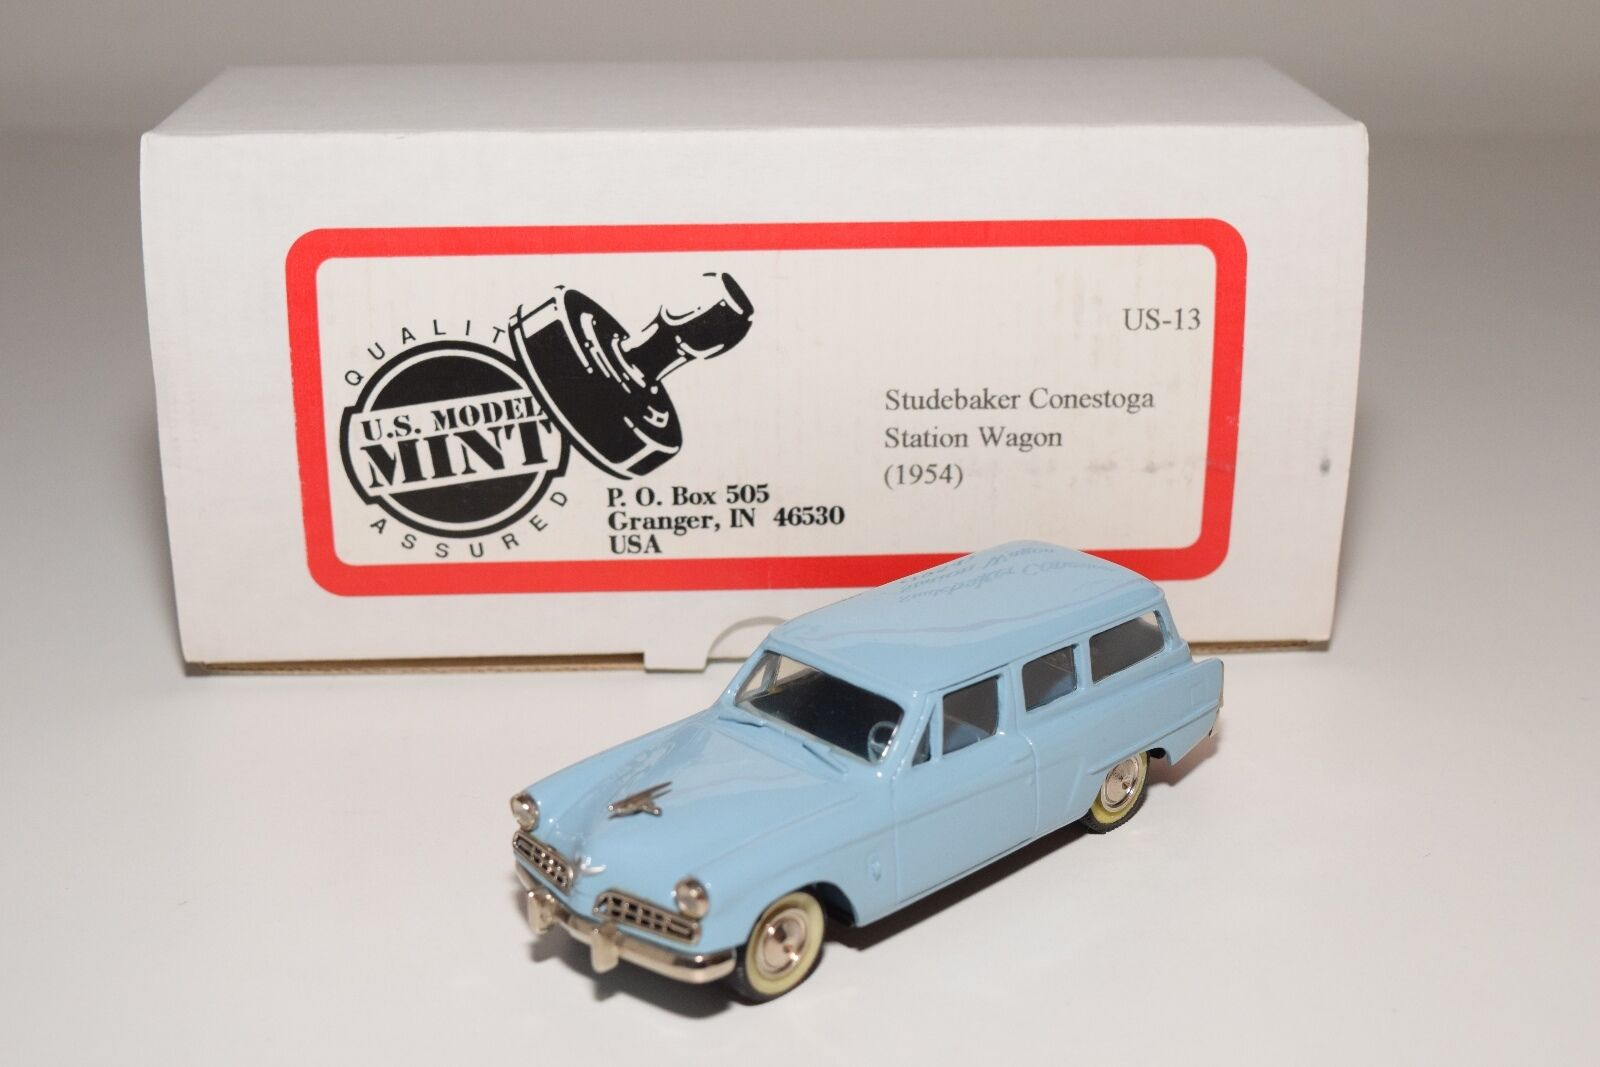 US MINT US-13 STUDEBAKER CONESTOGA STATION WAGON 1954 LIGHT blueE MINT BOXED